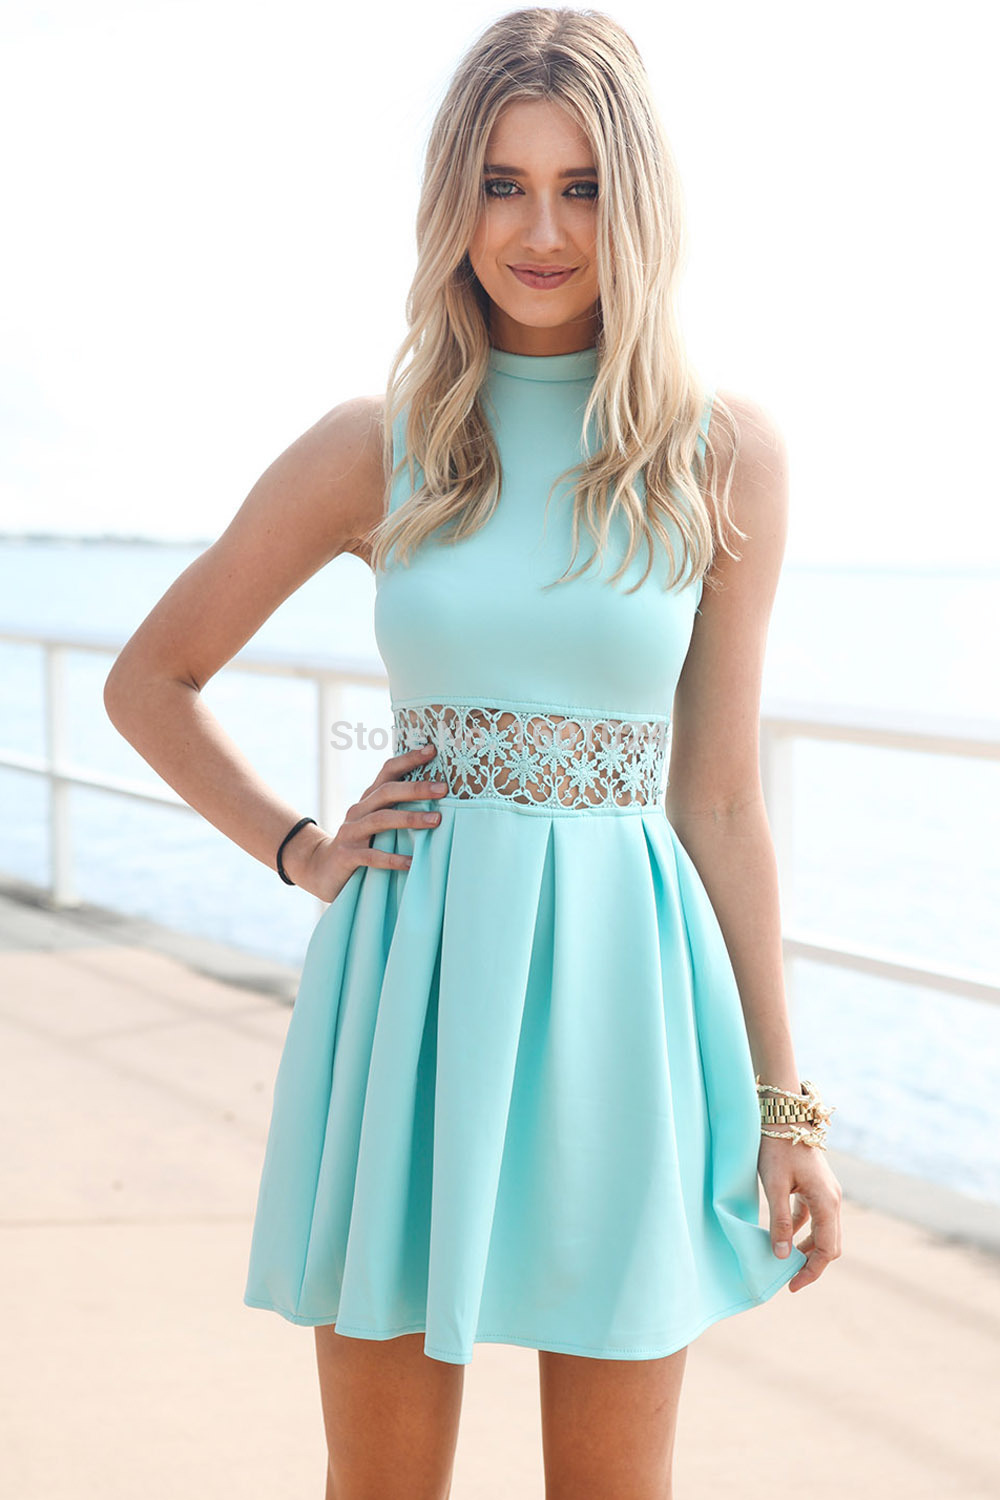 79b3c3c8d71 CASUAL HOMECOMING DRESSES - Omenas Benen